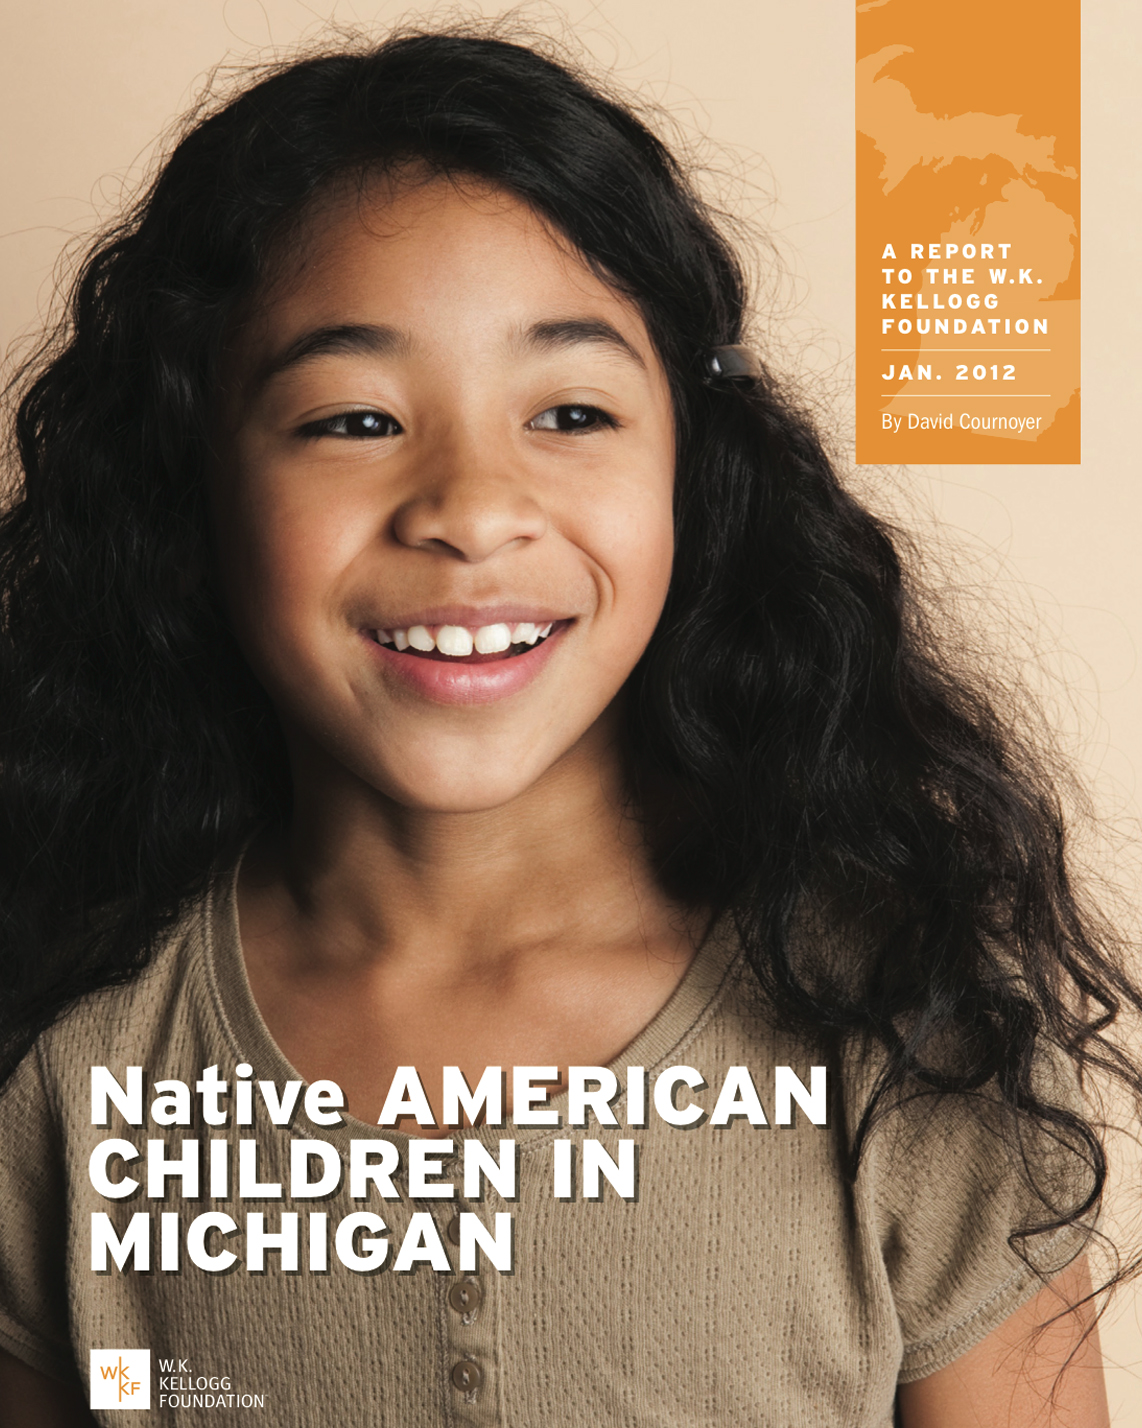 Native American Children in Michigan - Full Report - W.K. Kellogg Foundation